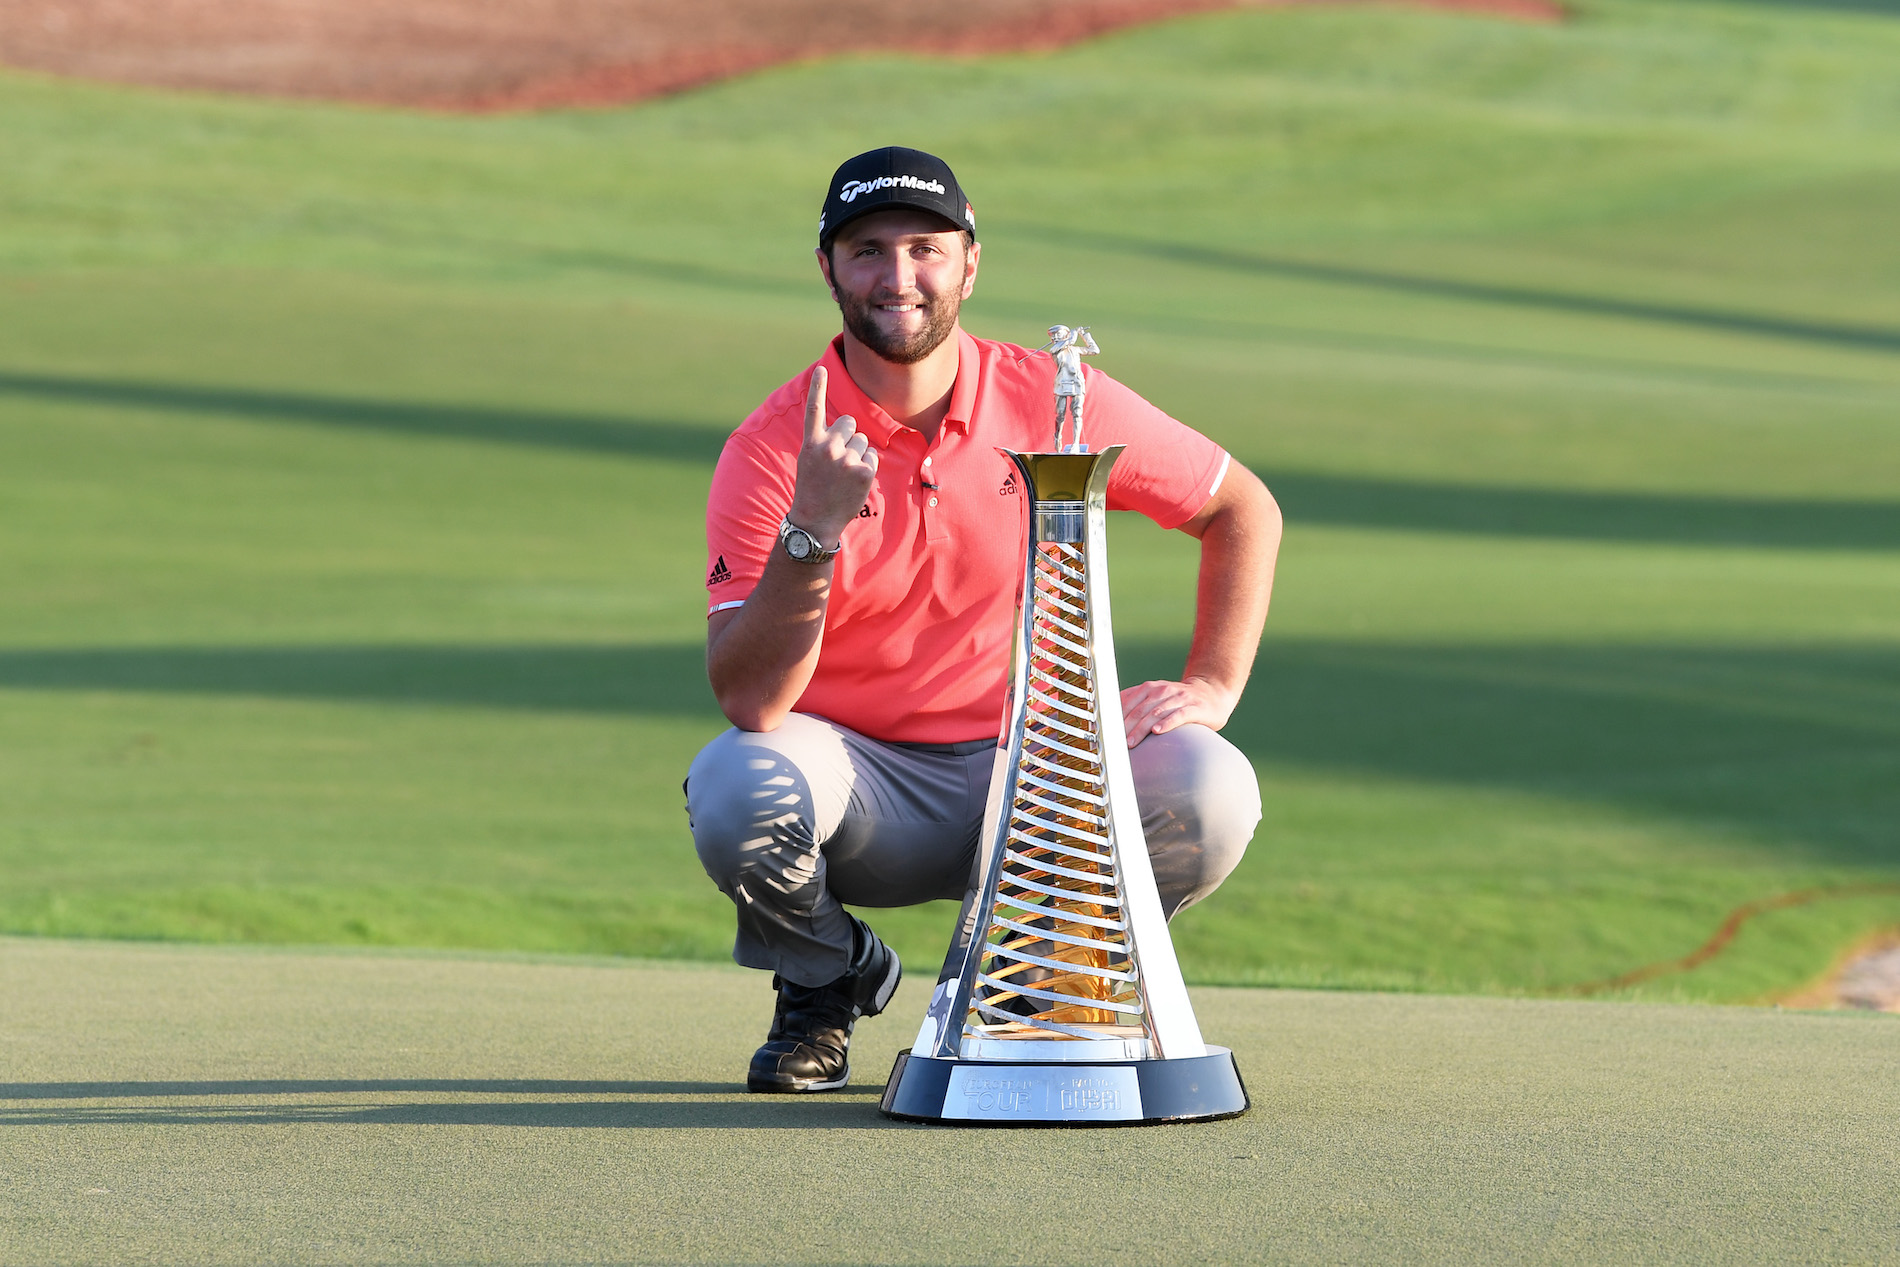 Jon Rahm Can Become the No. 1 Ranked Golfer in the World if This Happens Sunday at The Memorial